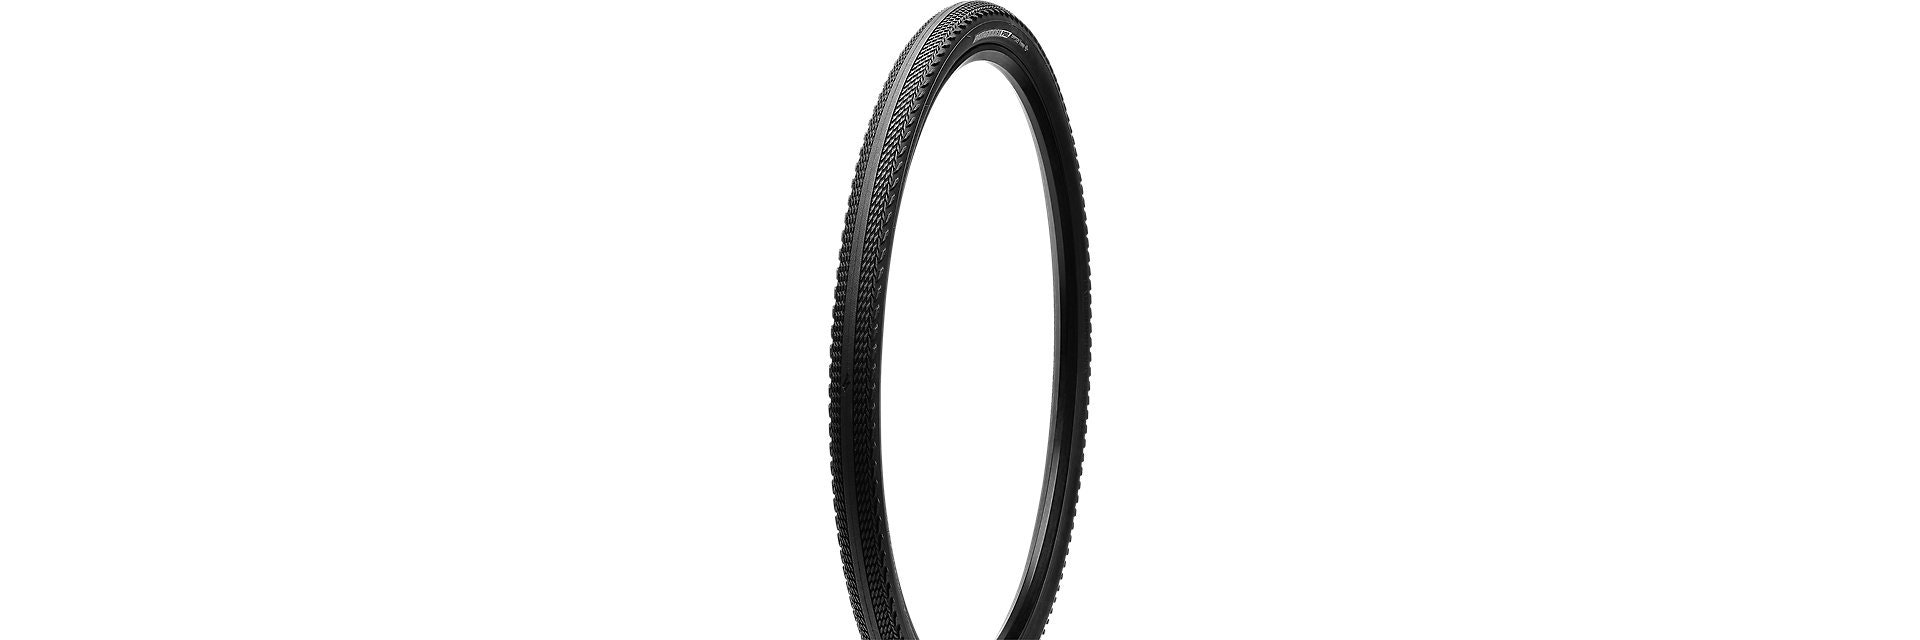 Specialized Pathfinder Pro 700x42 Bicycle Tire